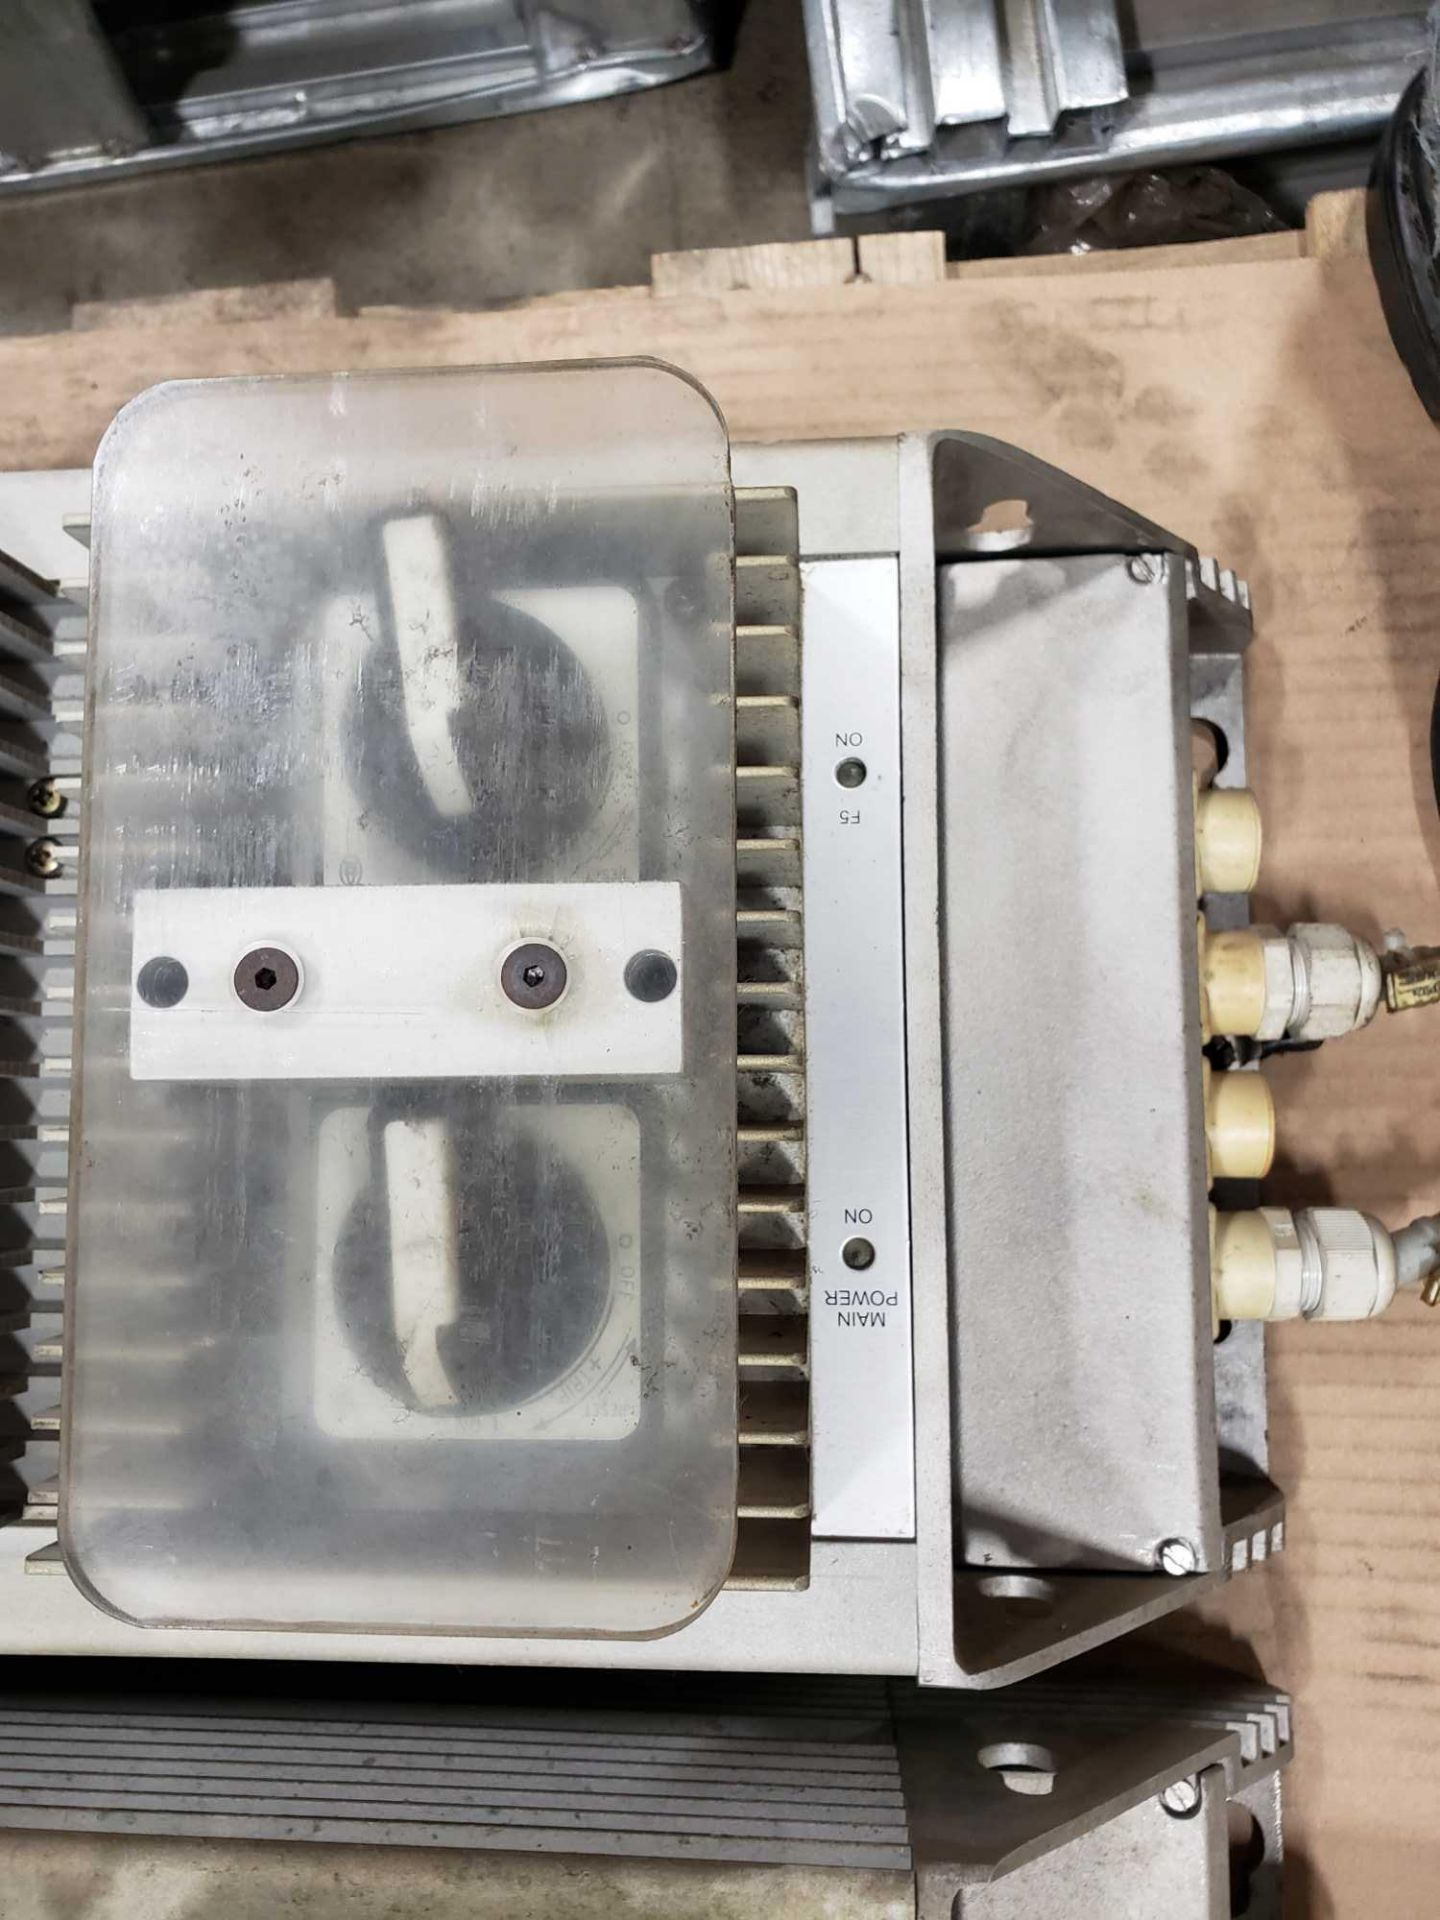 Lot 368 - Phoenix Contact Interbus Type IBS-IP-500-PS-2-BS power supply.